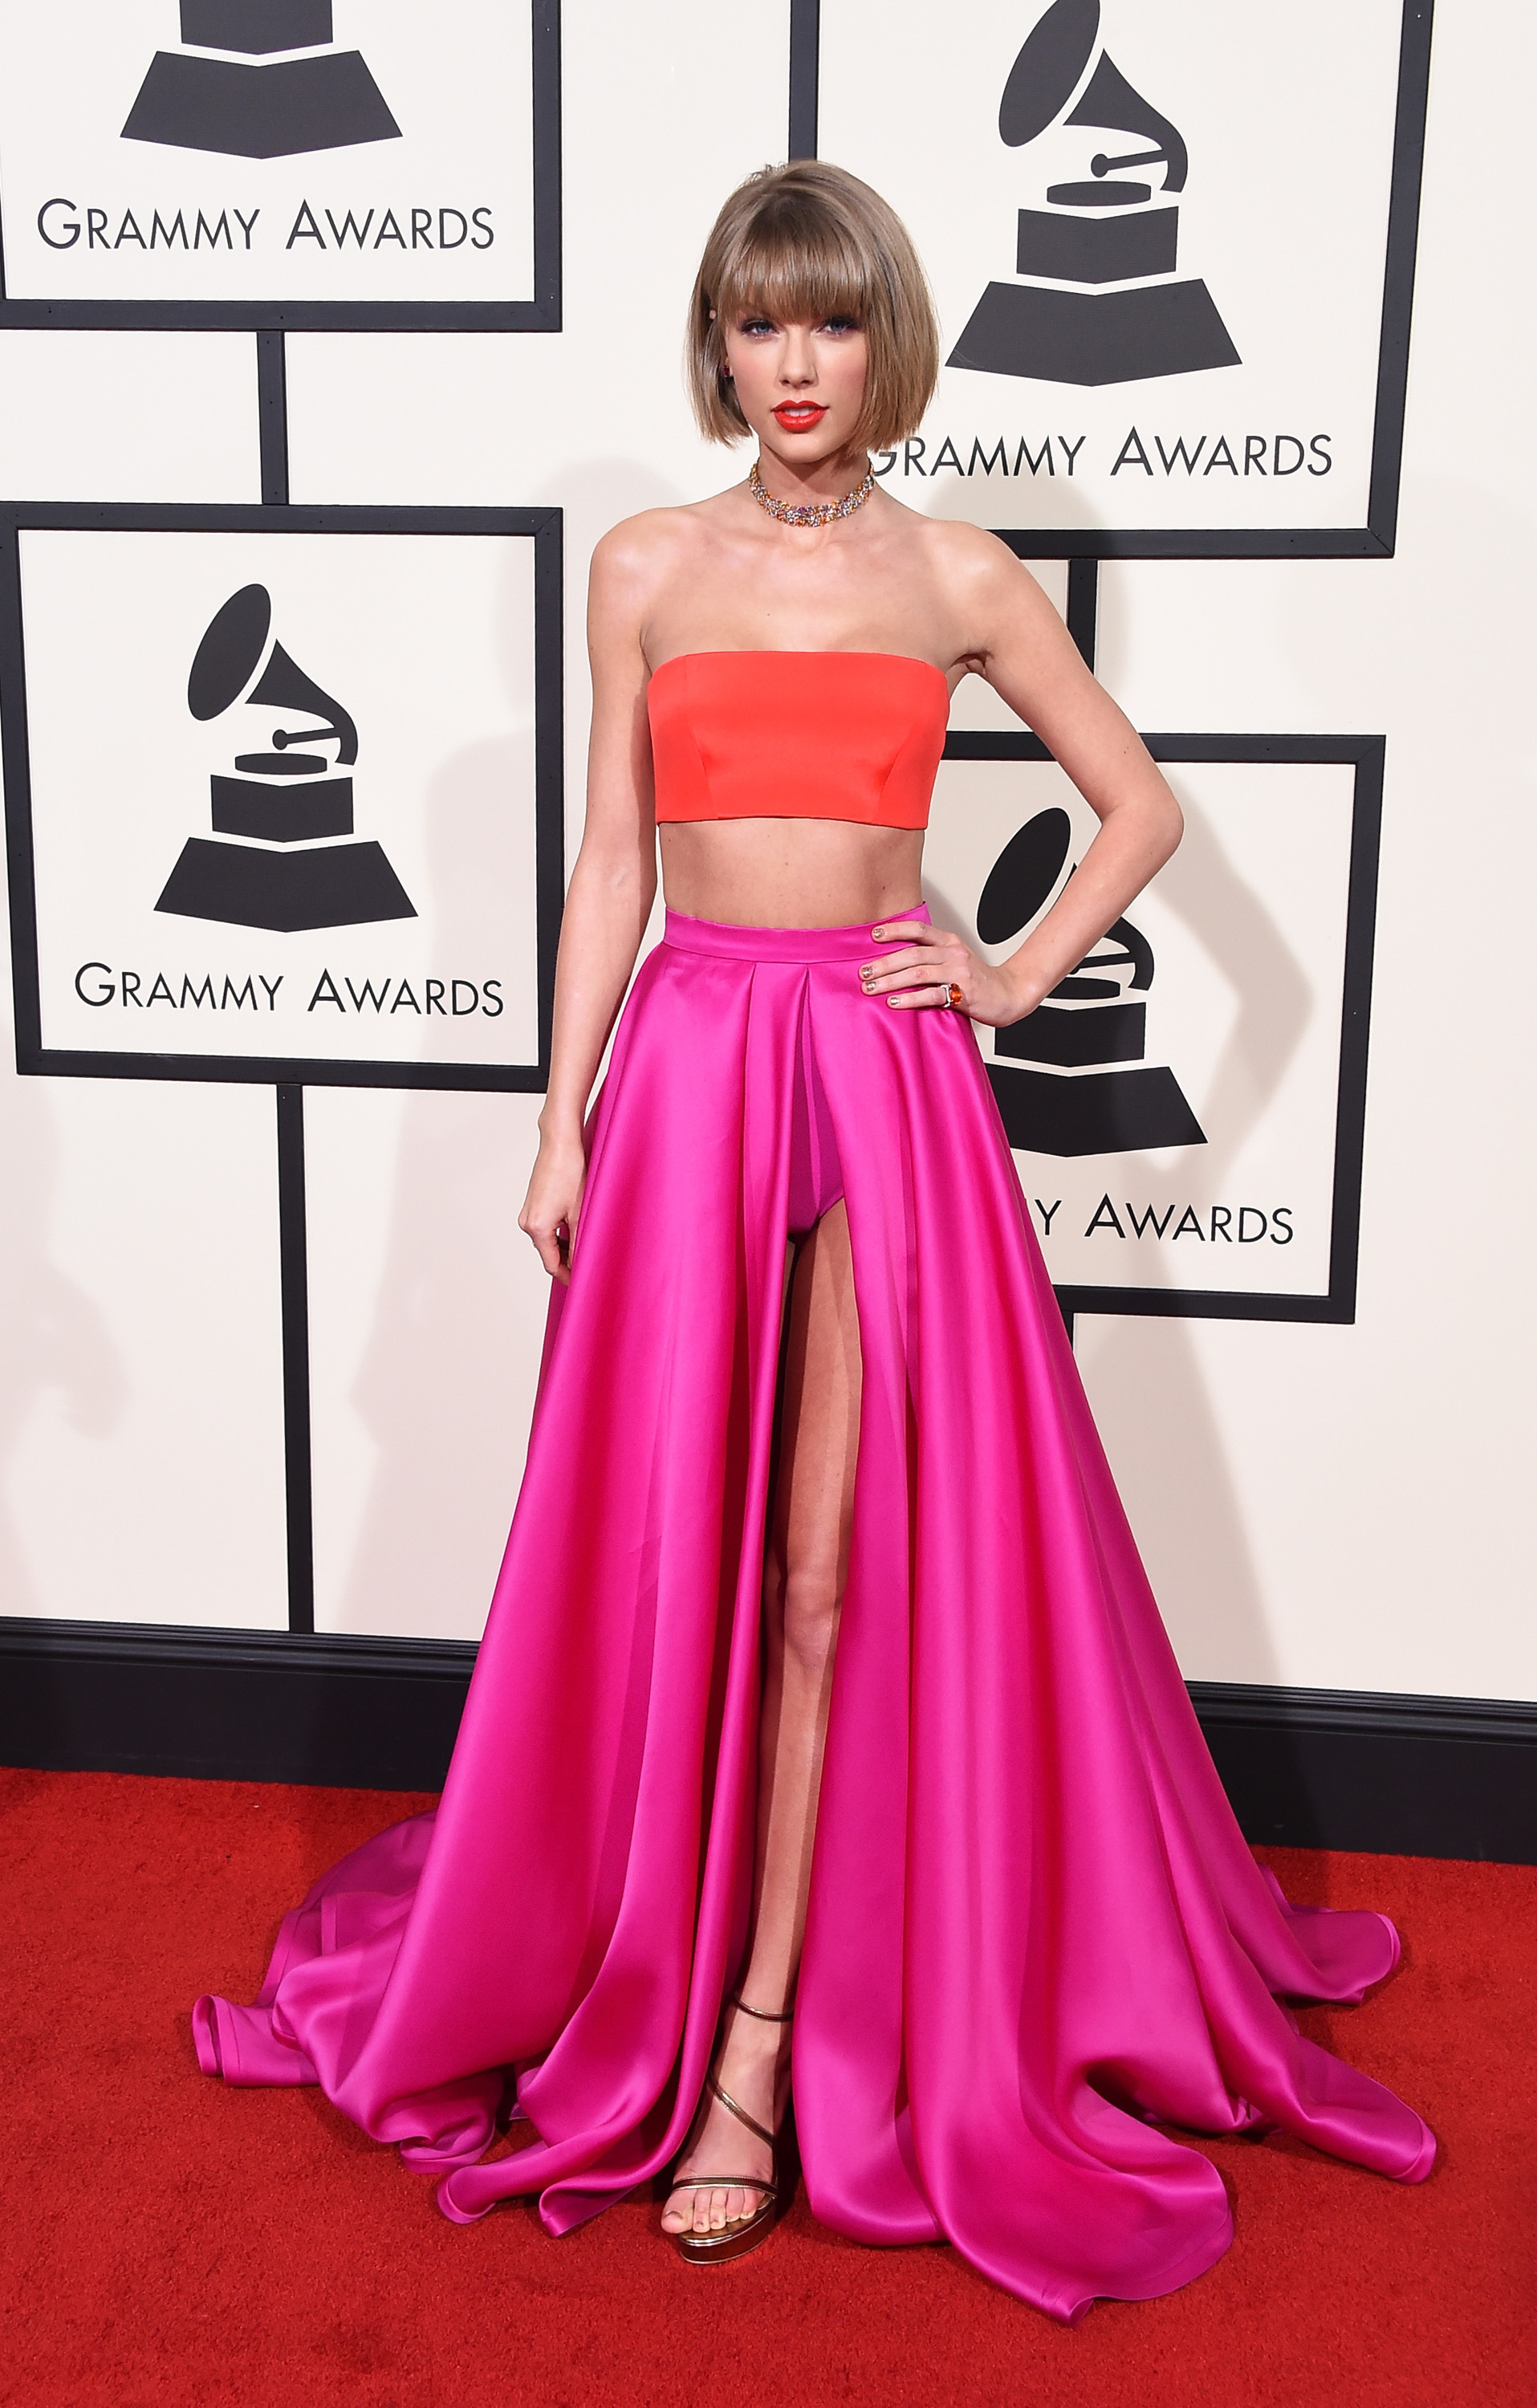 Taylor Swift attends the 58th GRAMMY Awards at Staples Center on Feb. 15, 2016 in Los Angeles.